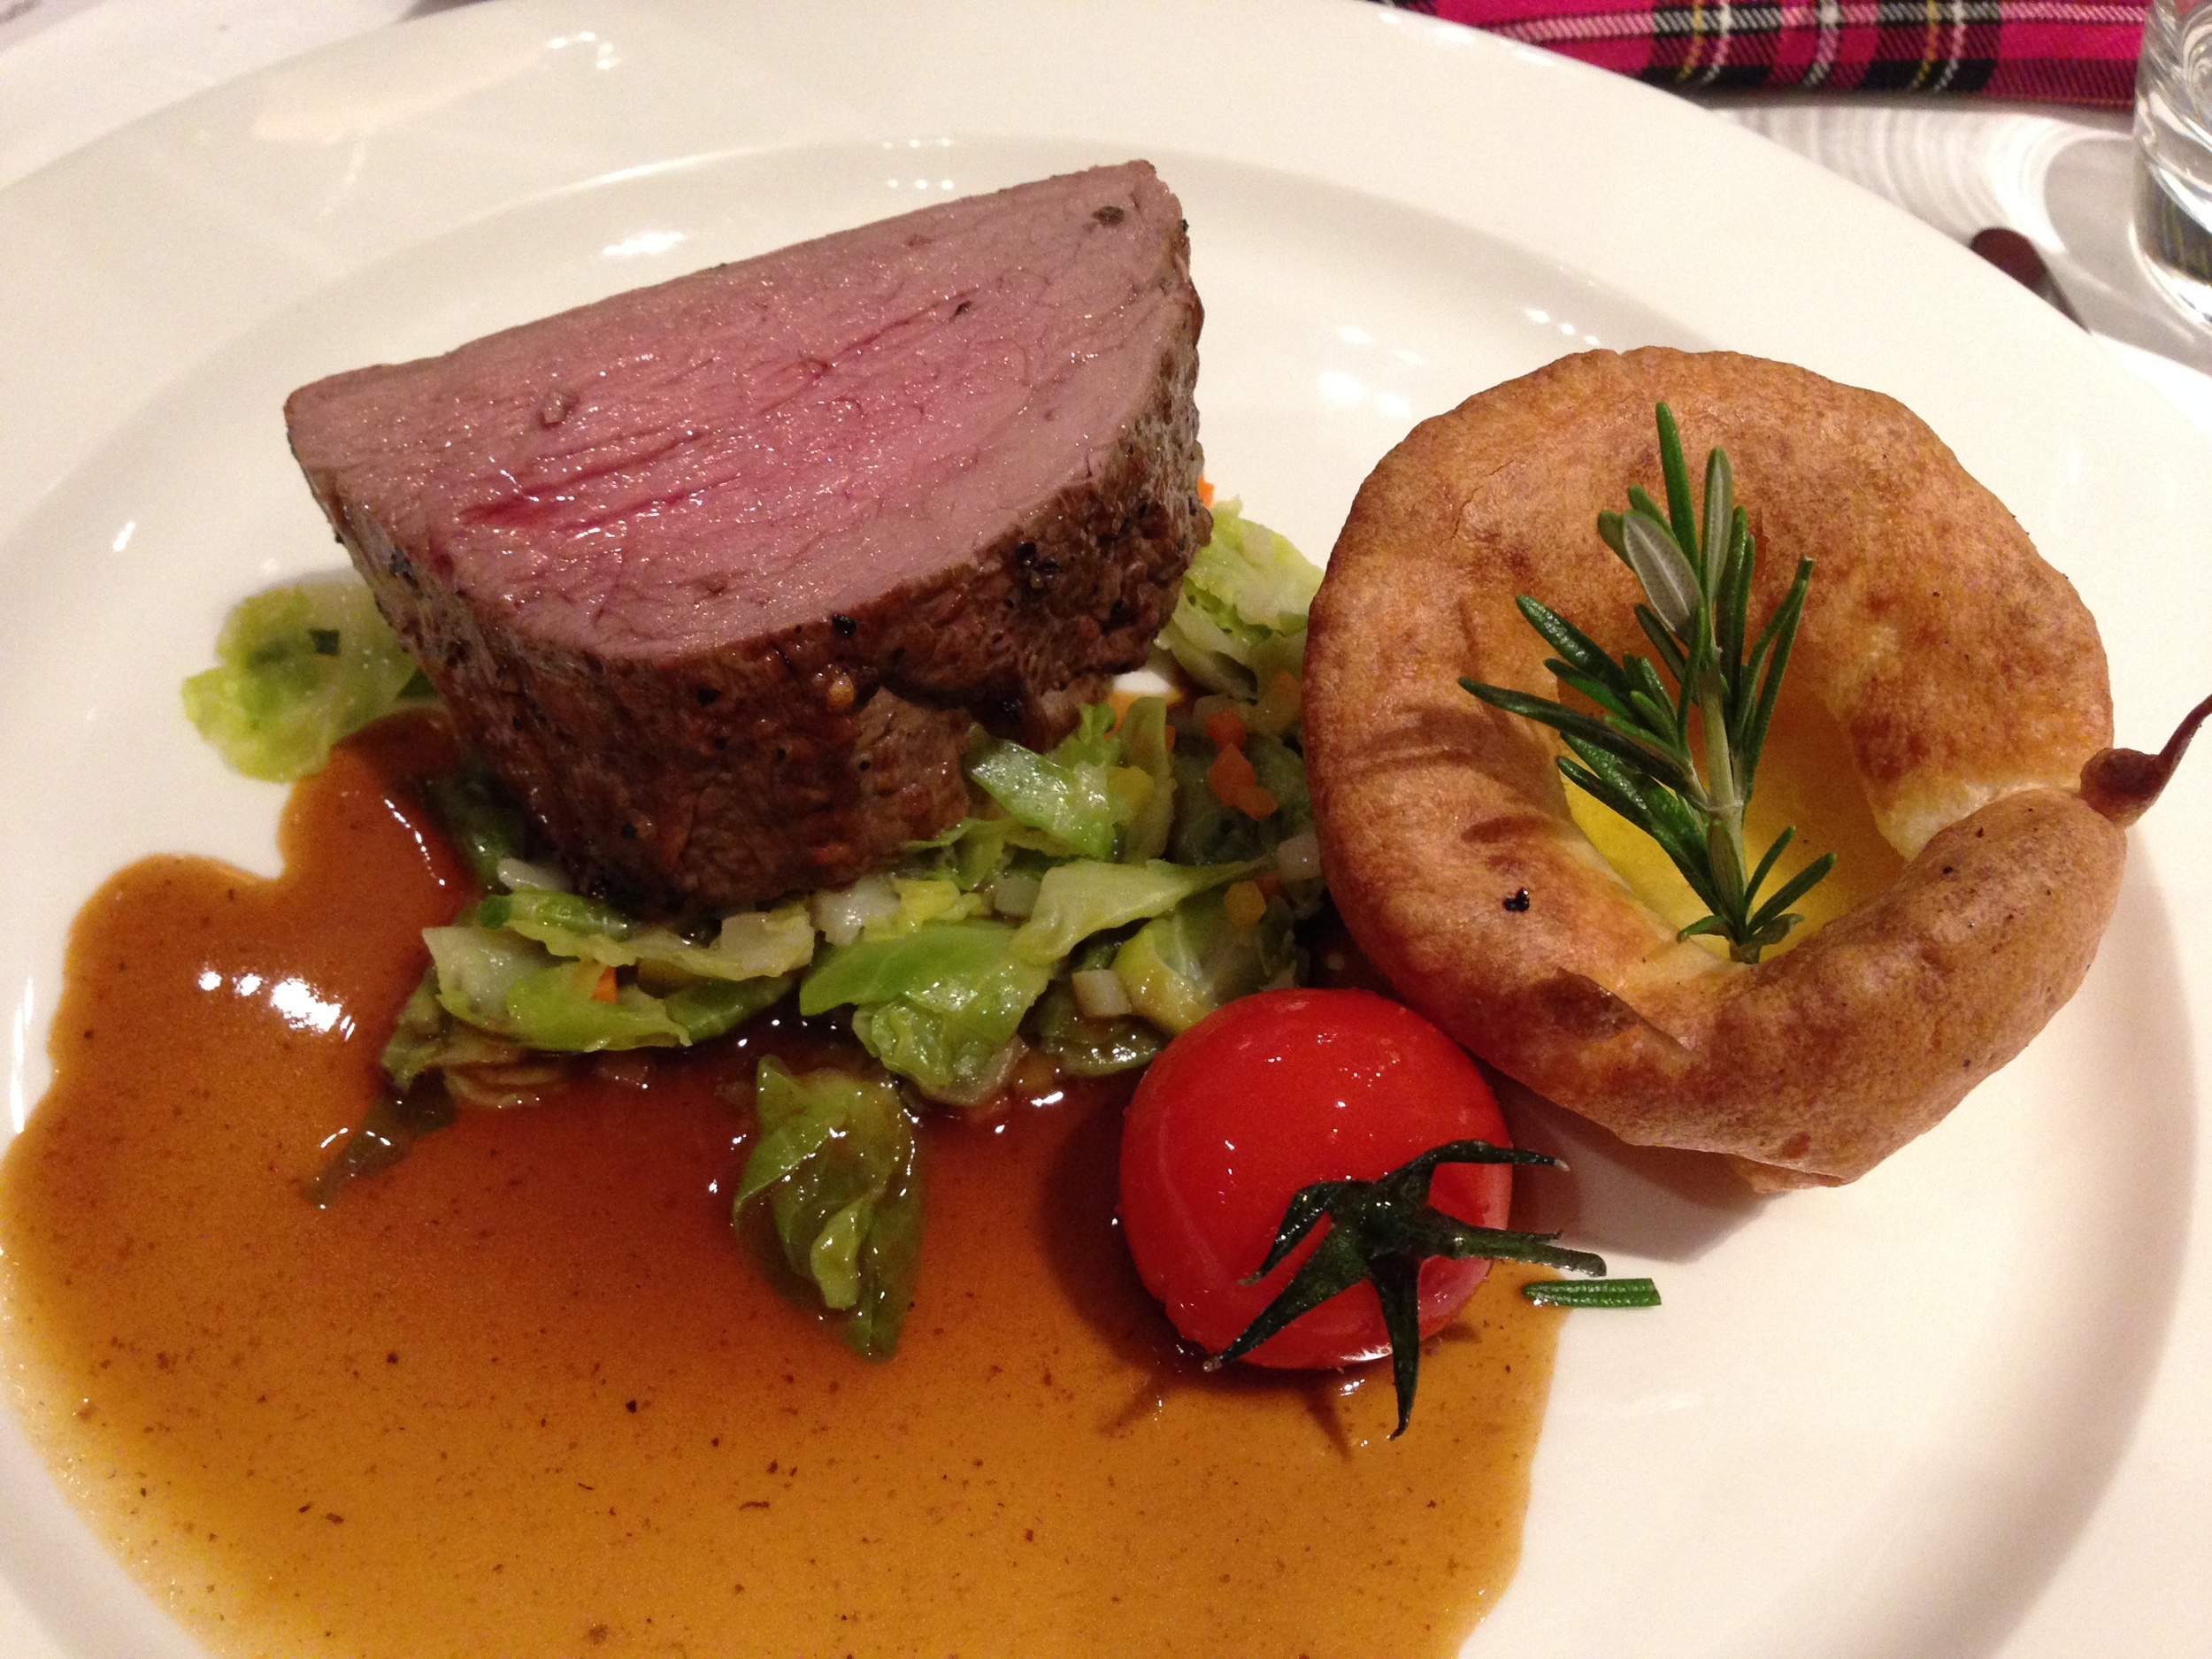 Galloway fillet on sprouts with ale gravy and Yorkshire-Pudding served with a Single Malt Bourbon Wood Adelphi Cask Strenghth 21 years/1992 Glen Grant